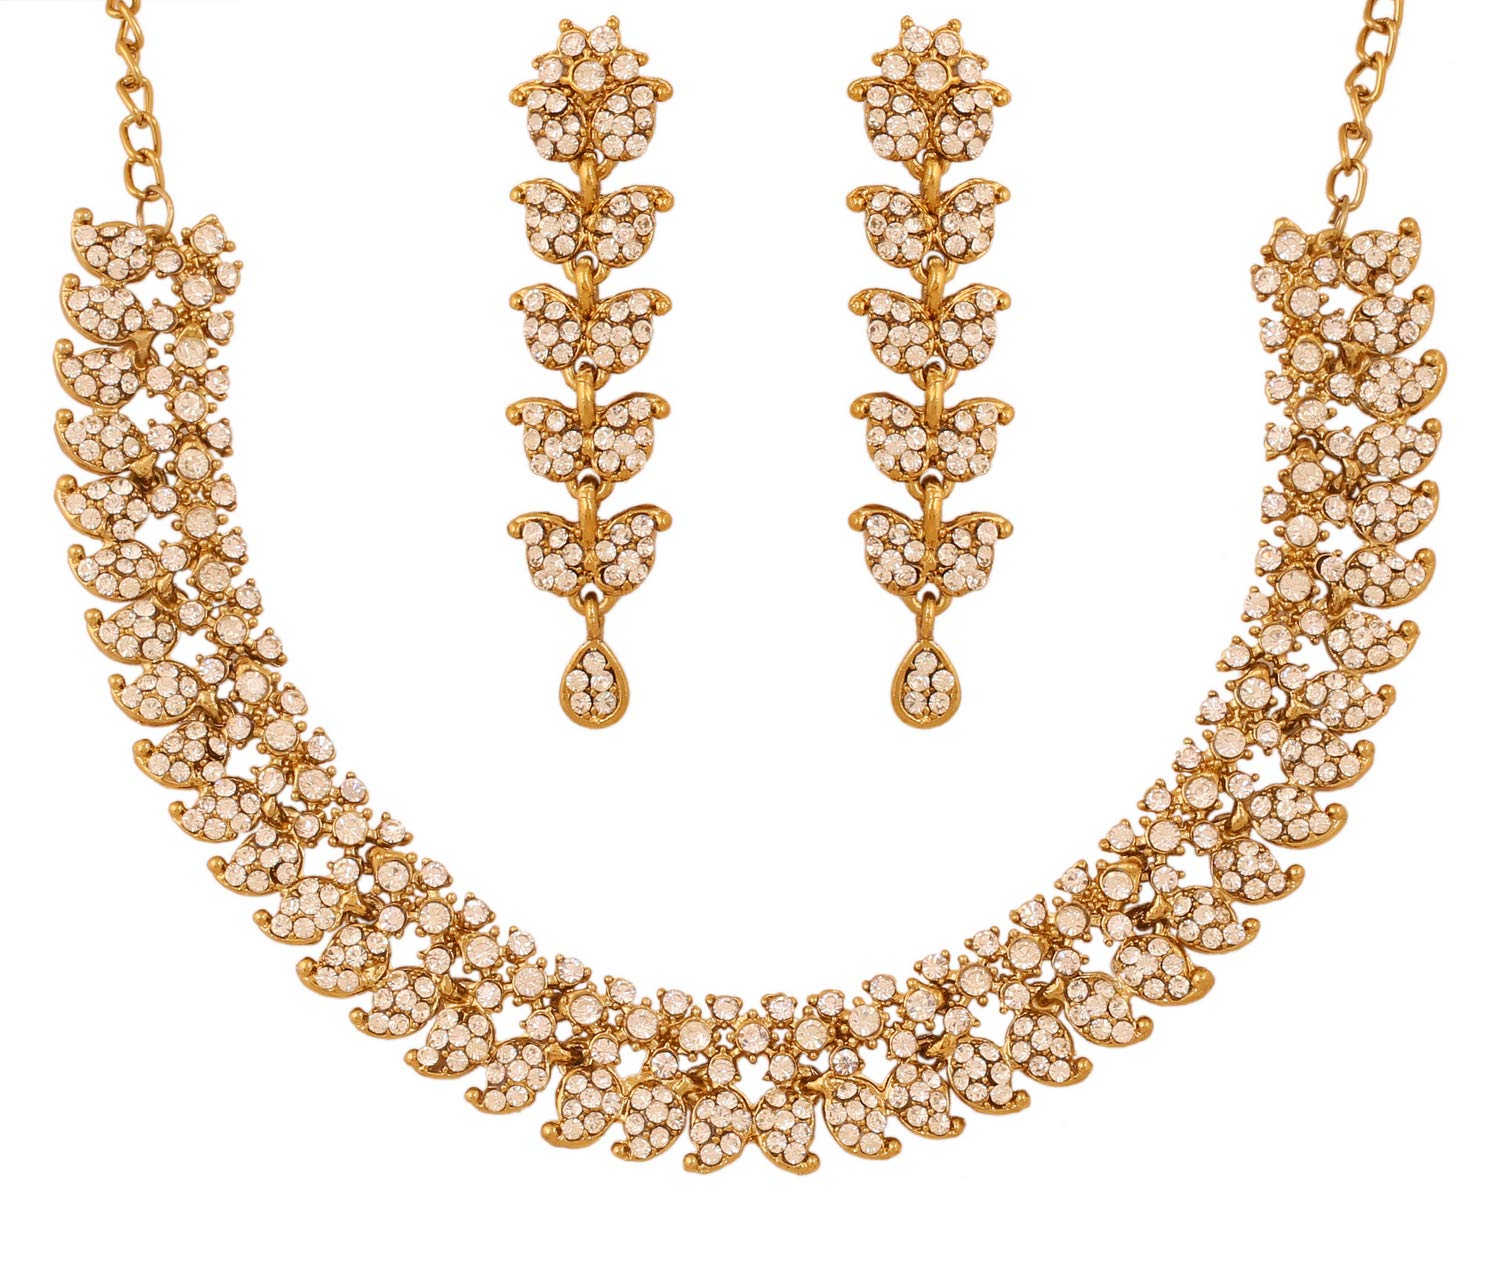 Touchstone Hollywood Glamour White Crystals Paisley Motif Grand Jewelry Necklace in Antique Tone for Women